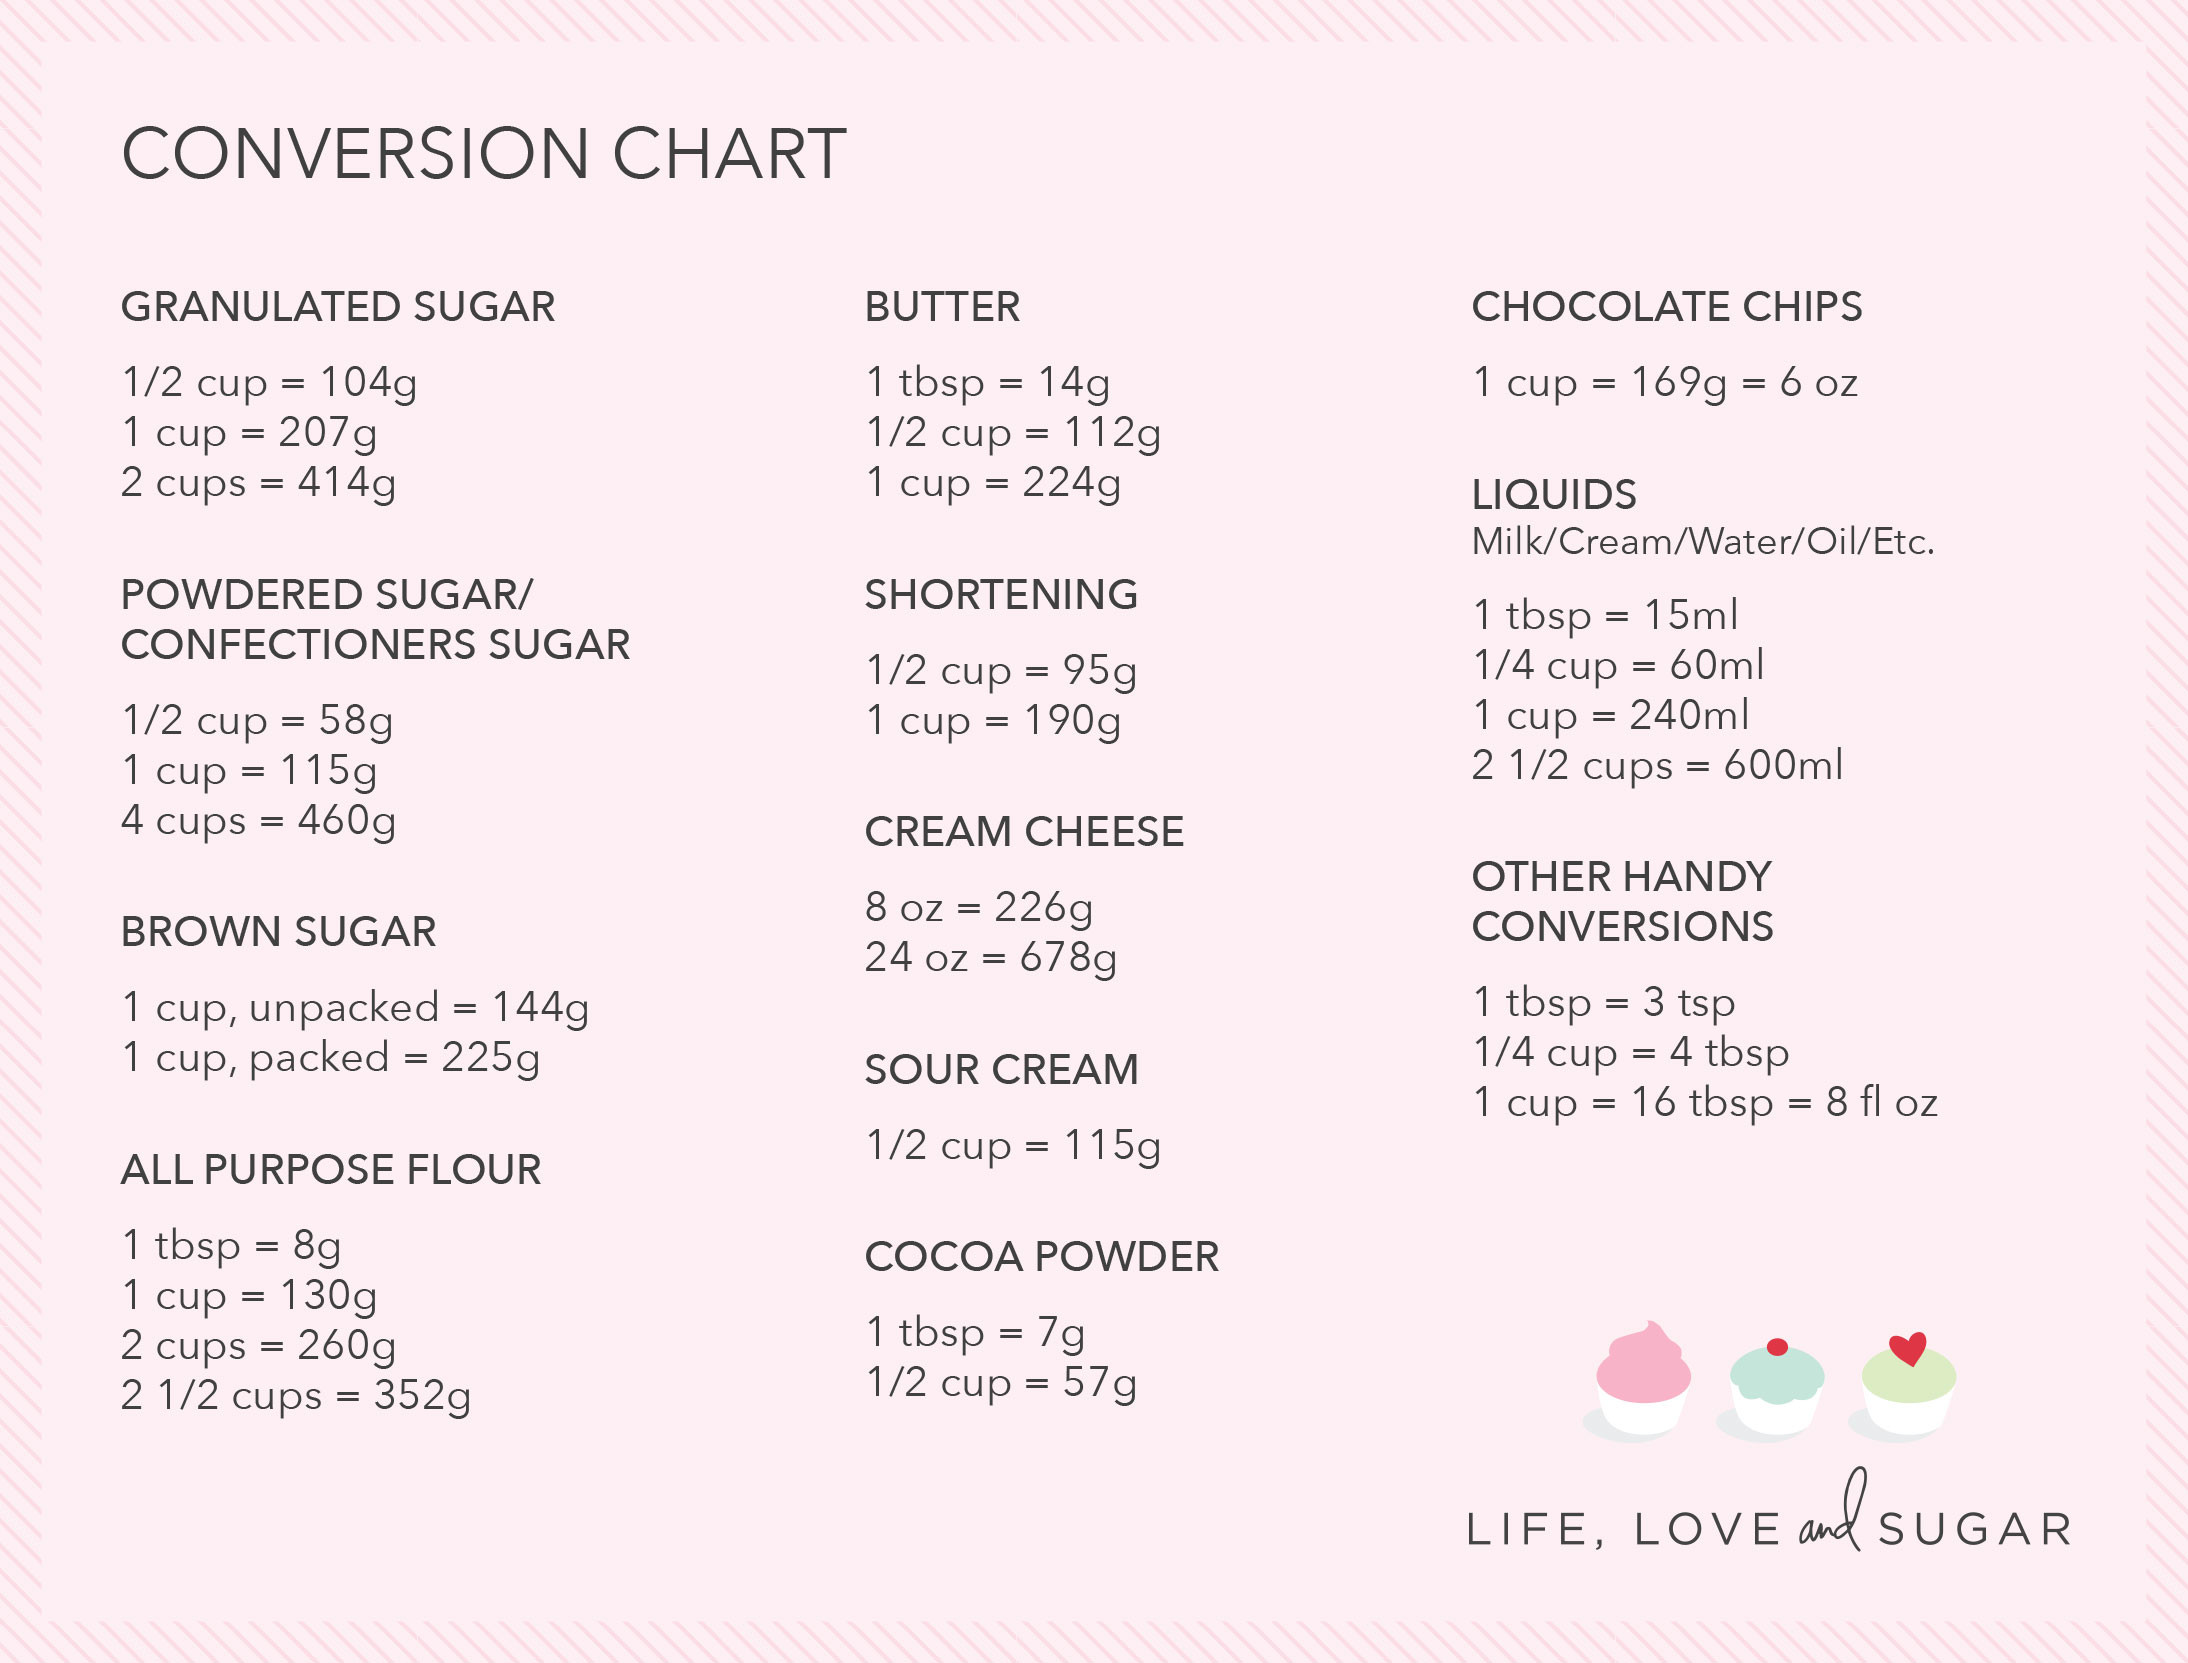 Wallpaper conversion chart 40 images 2188x1663 conversion chart life love and sugar download 1920x1080 nvjuhfo Image collections